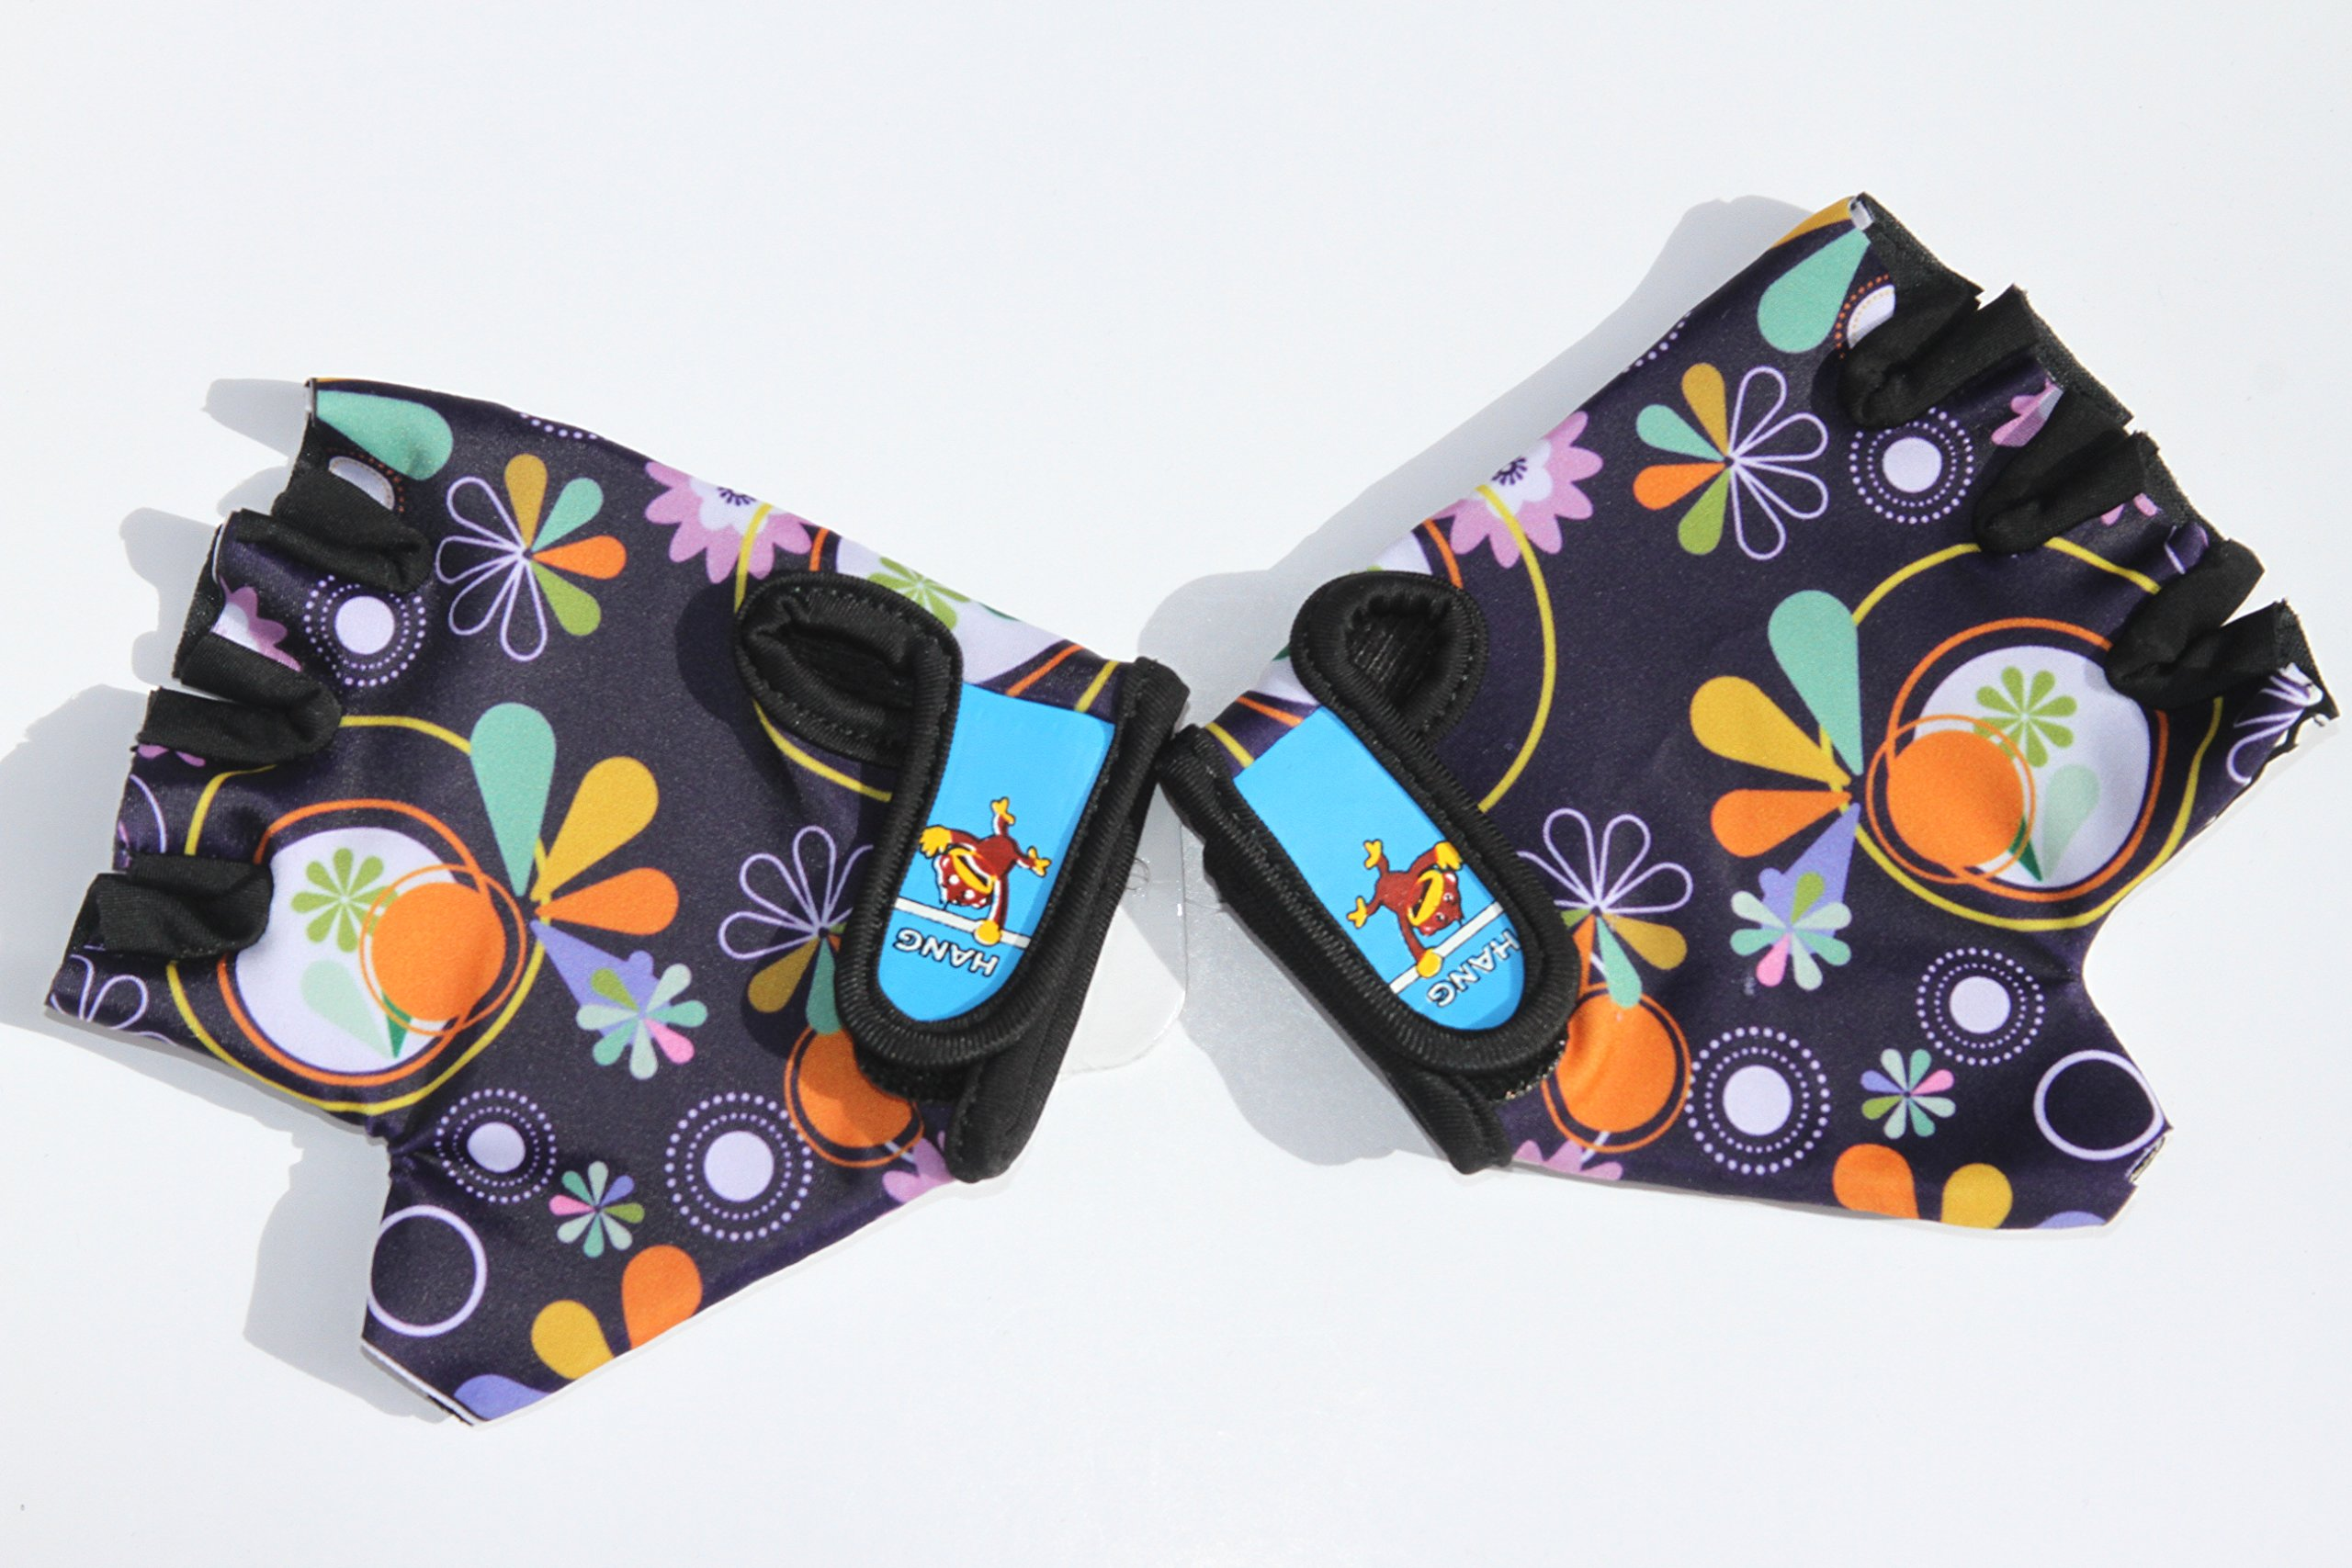 HANG Monkey Bars Gloves With Grip Control (Flowers) For children 5 and 6 years old by HANG (Image #1)